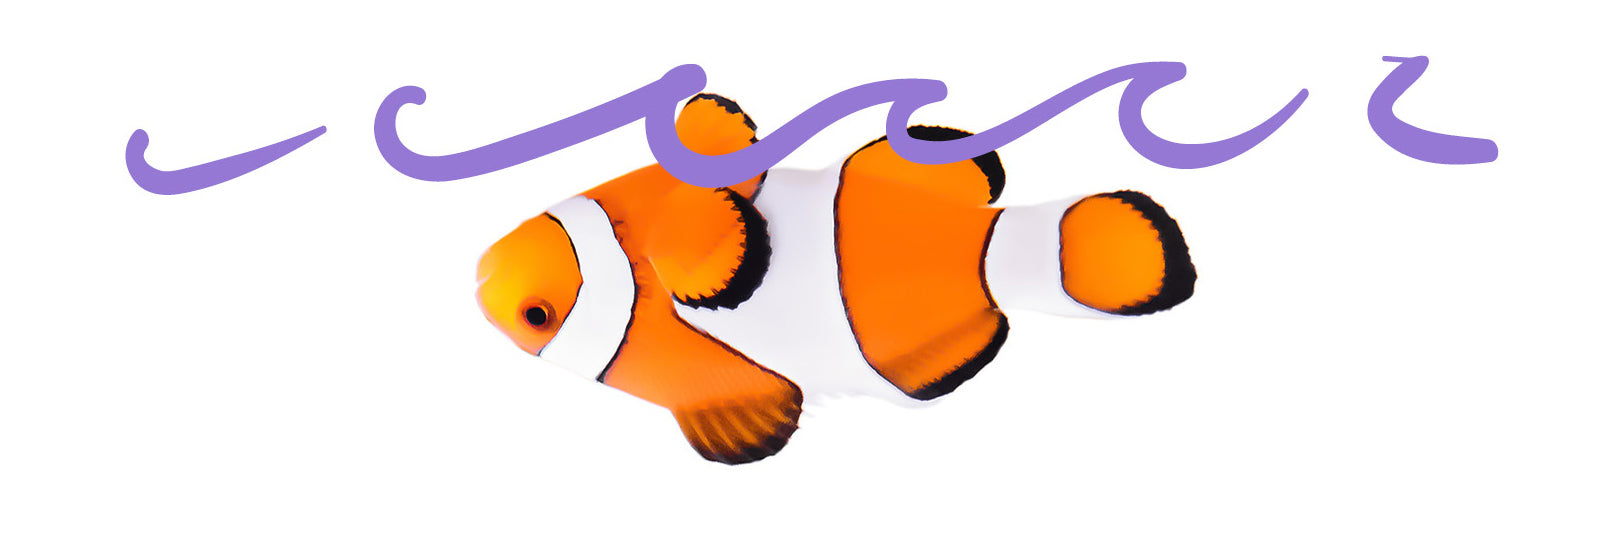 clown fish floating upside down